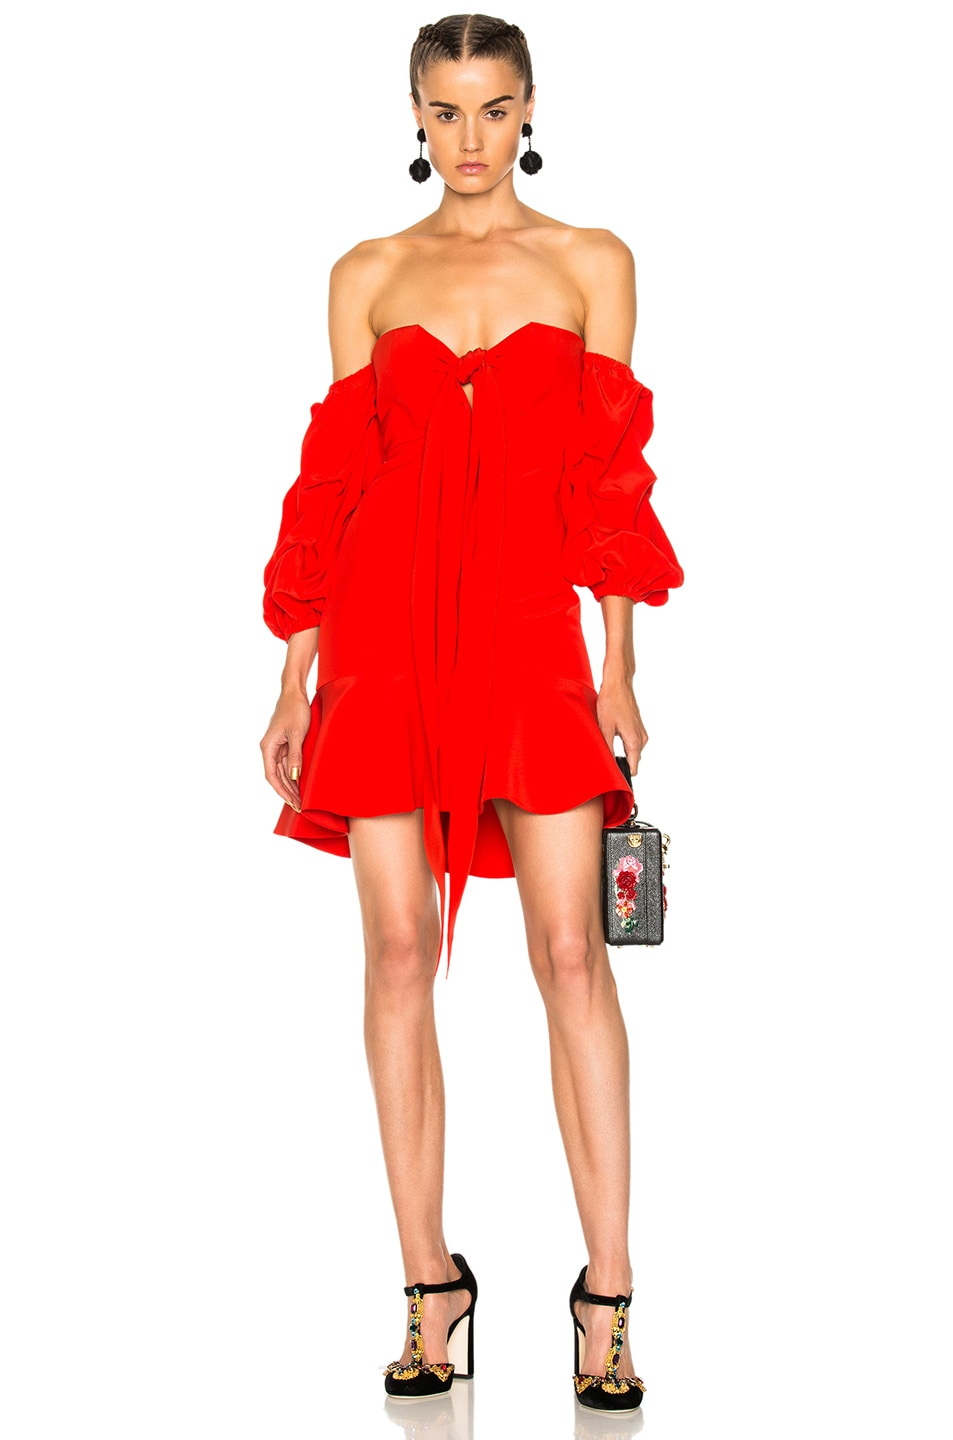 Image 1 of Alexis for FWRD Alejandra Dress in Red